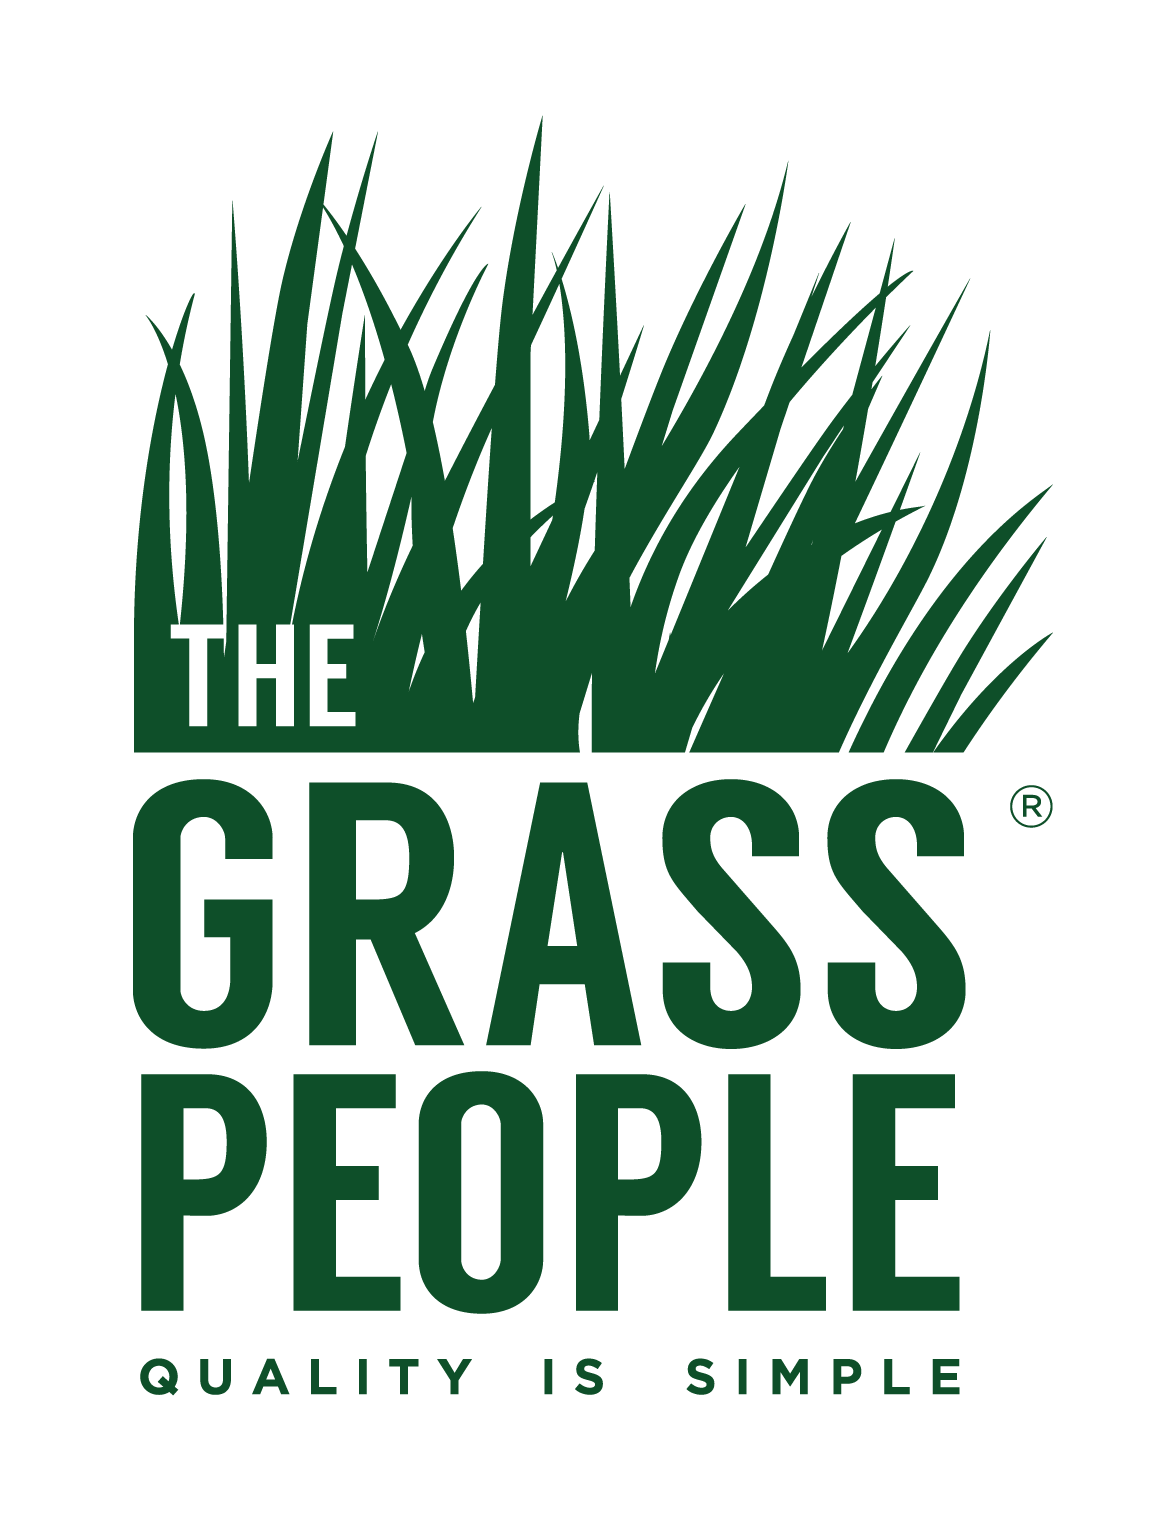 The Grass People Logo